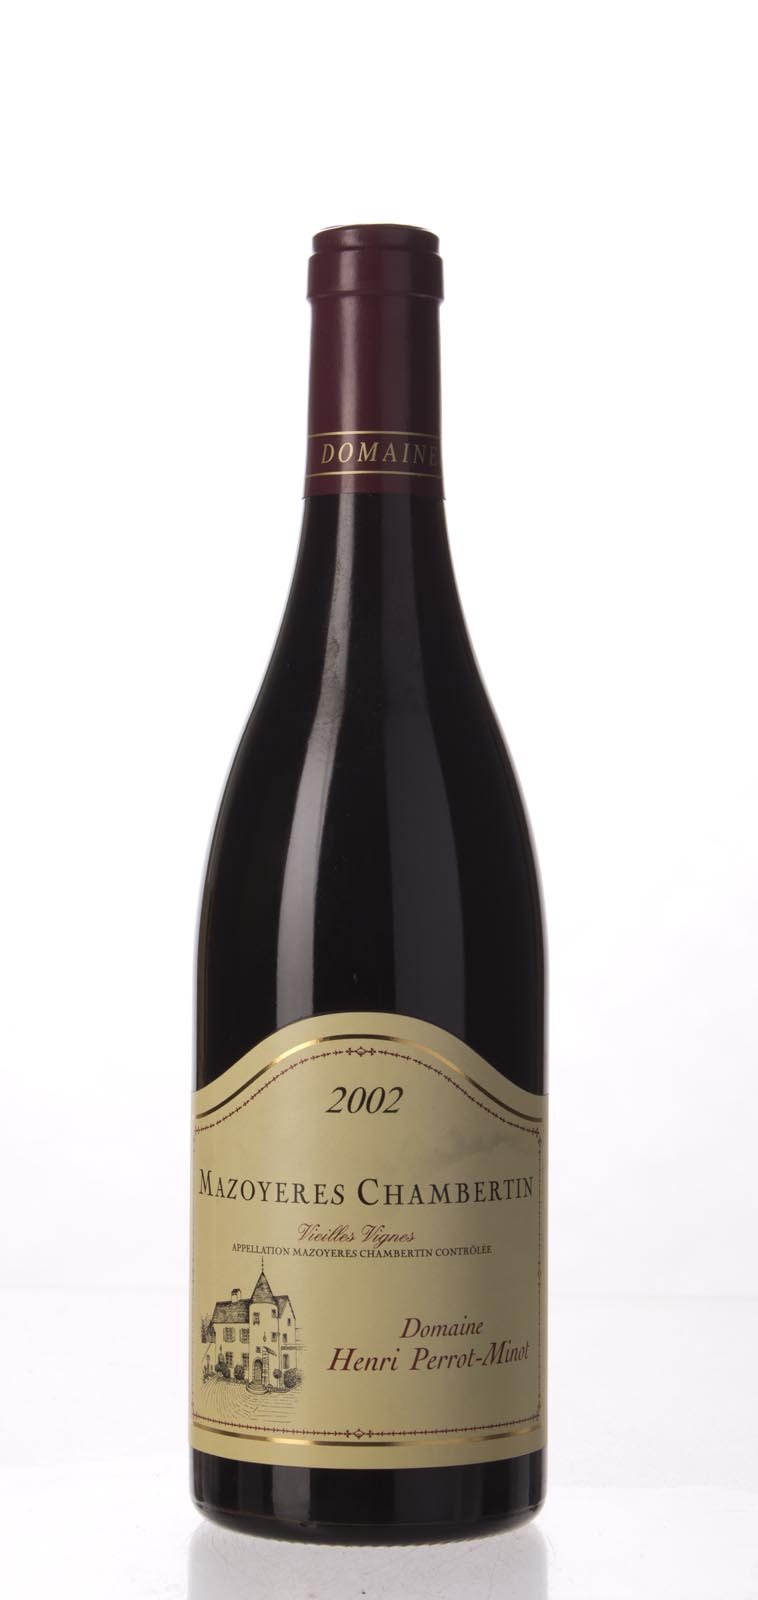 Domaine Perrot Minot Mazoyeres Chambertin Vieilles Vignes 2002,  (WS97) from The BPW - Merchants of rare and fine wines.